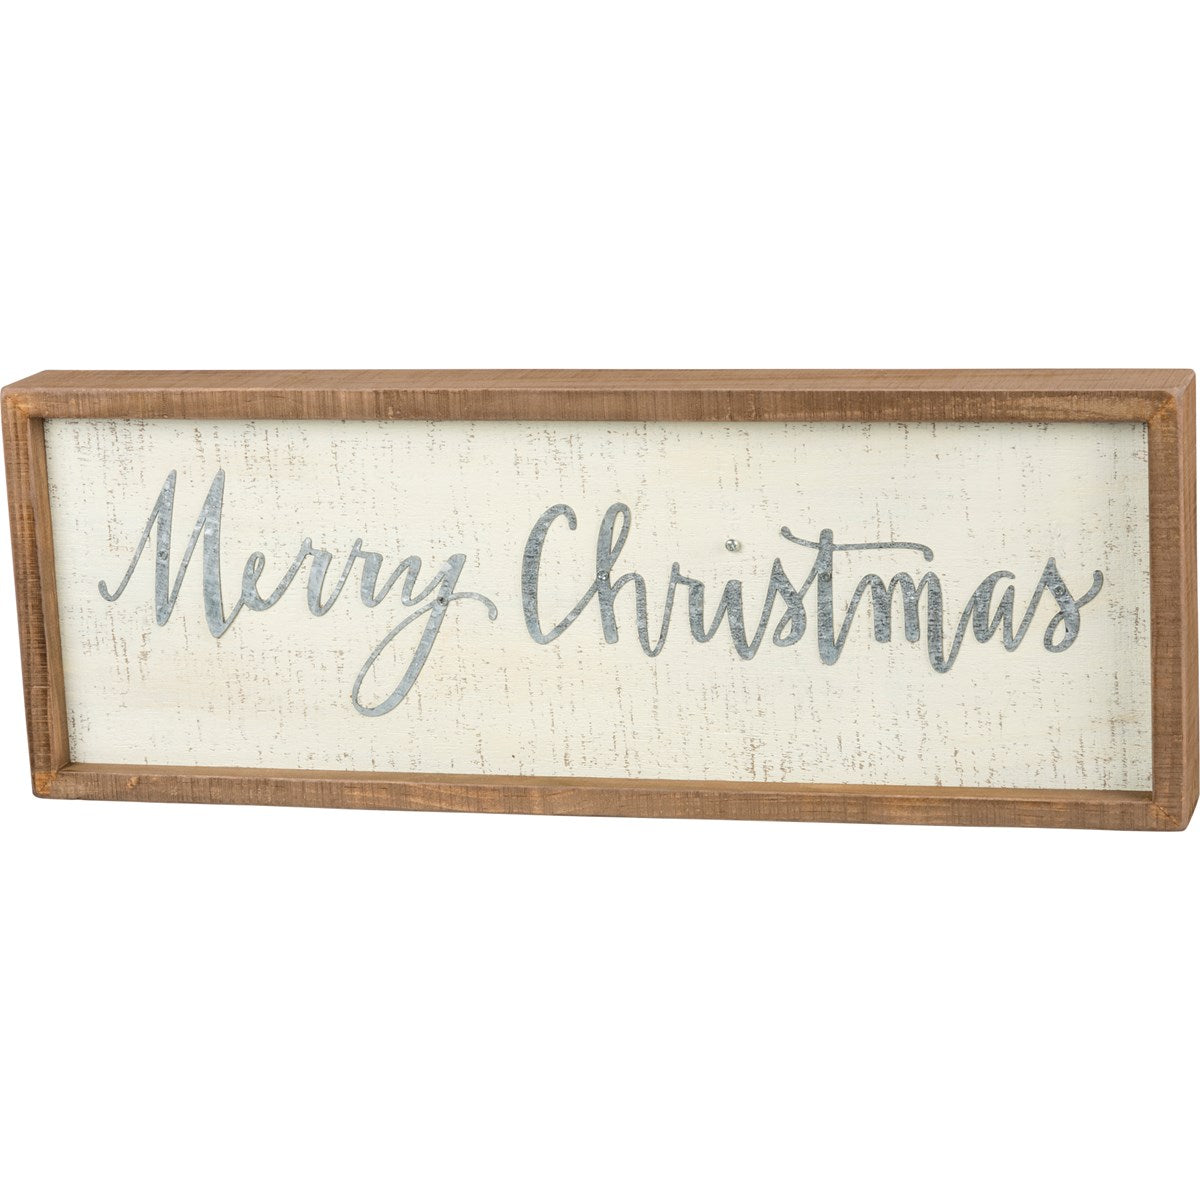 Merry Christmas Inset Box Sign - Vintage Crossroads